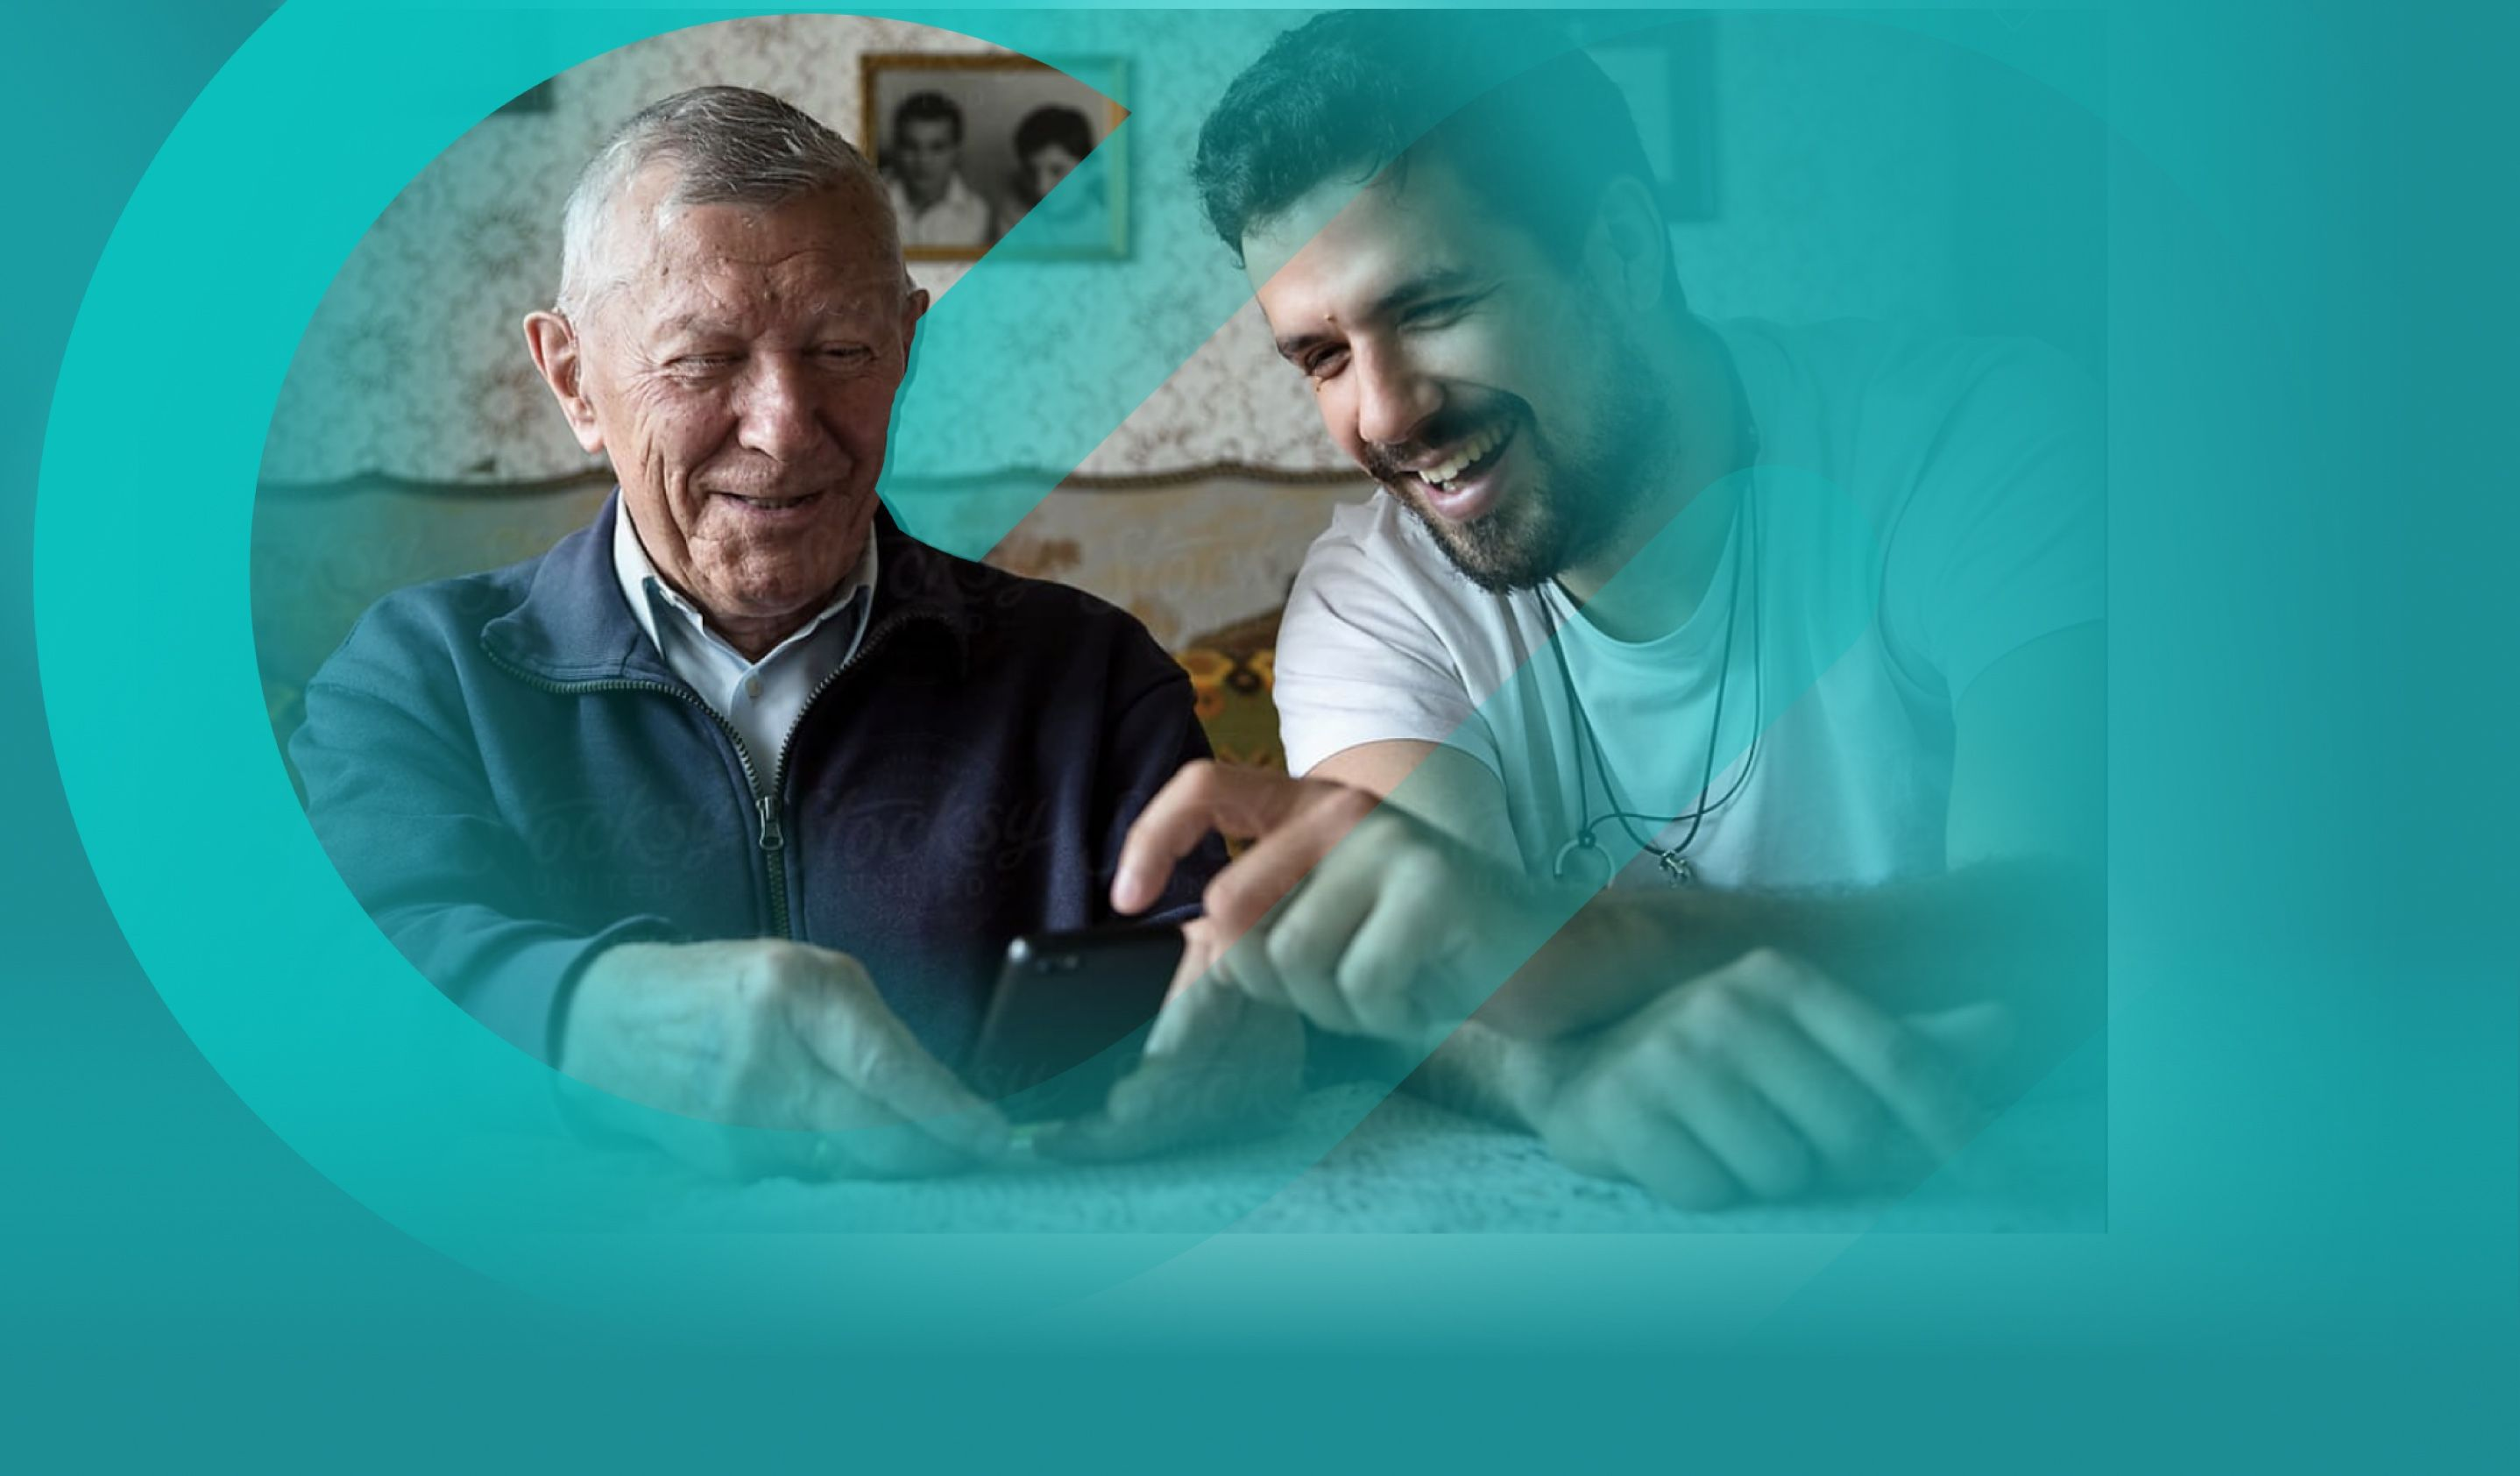 Get FREE, 100% independent advice about Home Care Packages and Providers